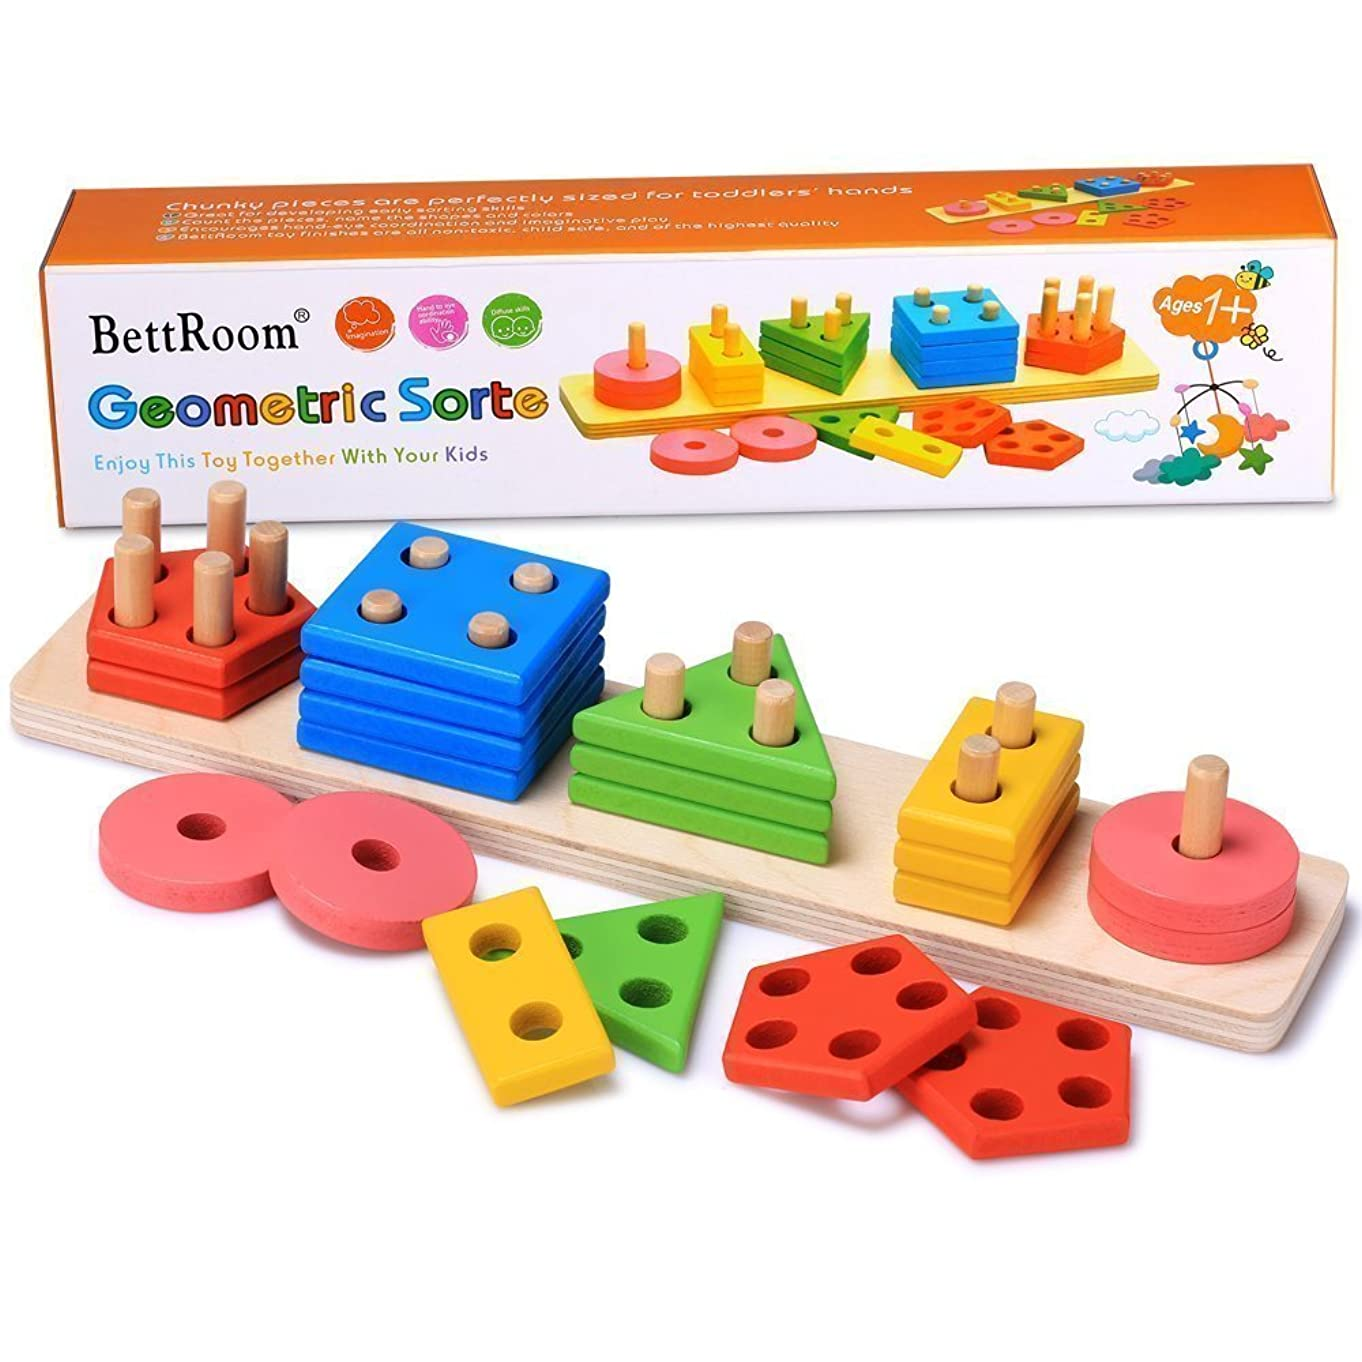 BettRoom Wooden Educational Preschool Toddler Toys for 1 2 3 4-5 Year Old Boys Girls Shape Color Recognition Geometric Board Blocks Stack Sort Kids Children Non-Toxic Toy(14IN)